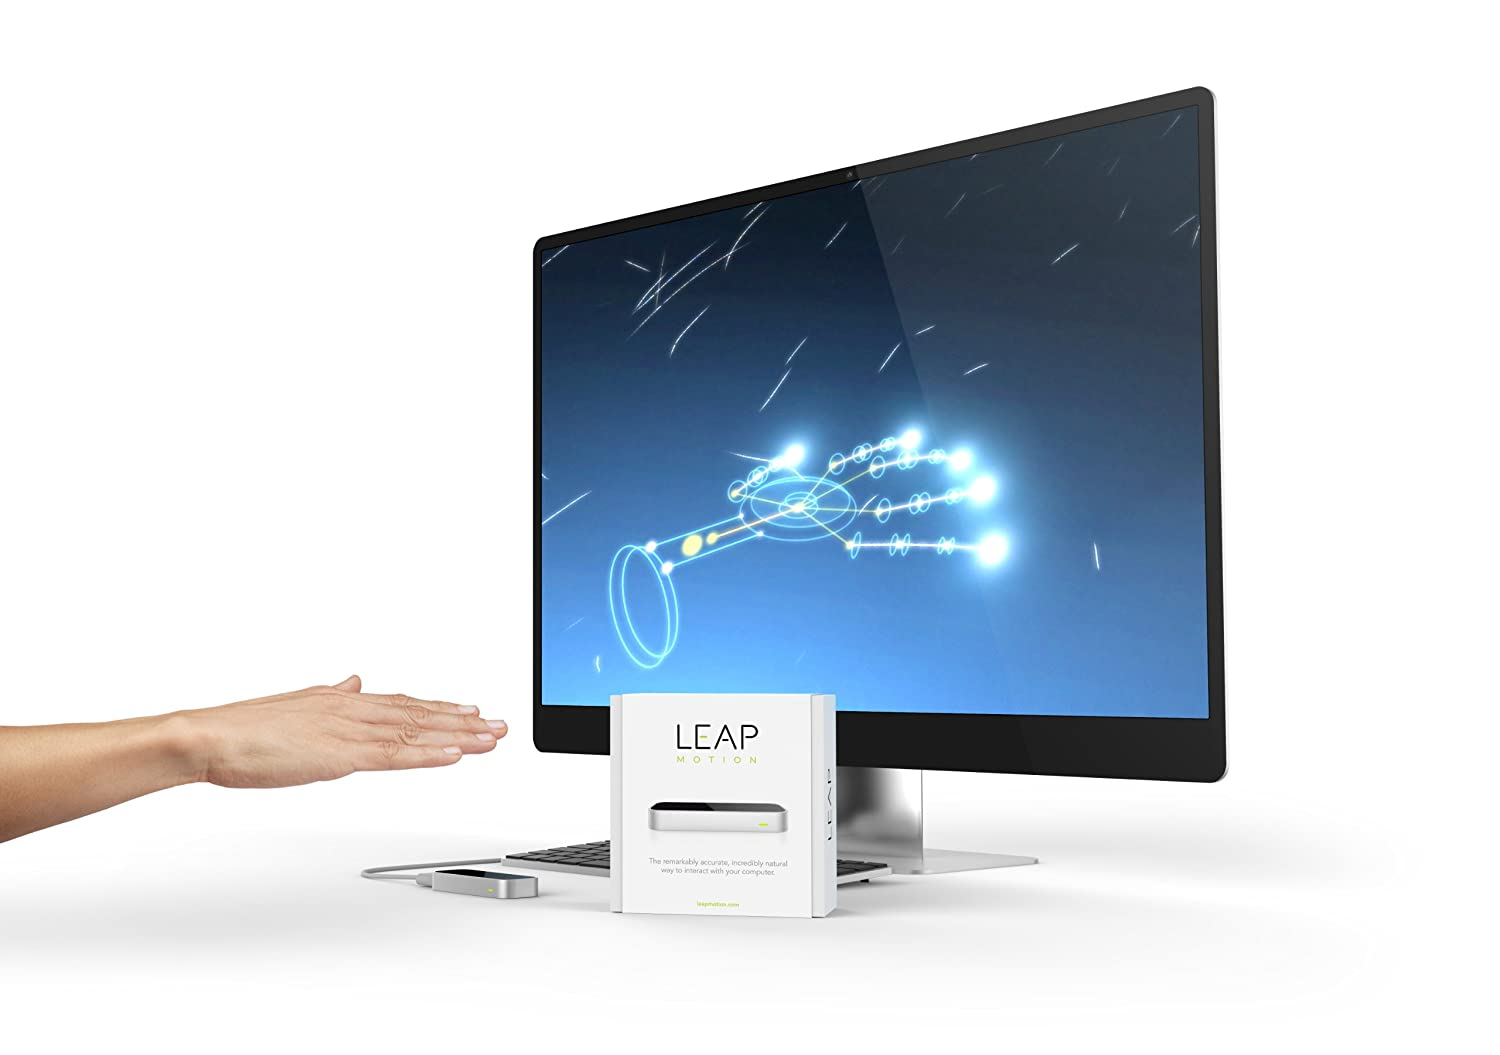 (小降)3D体感控制器 kinect的200倍精度 Leap Motion Controller for Mac or PC